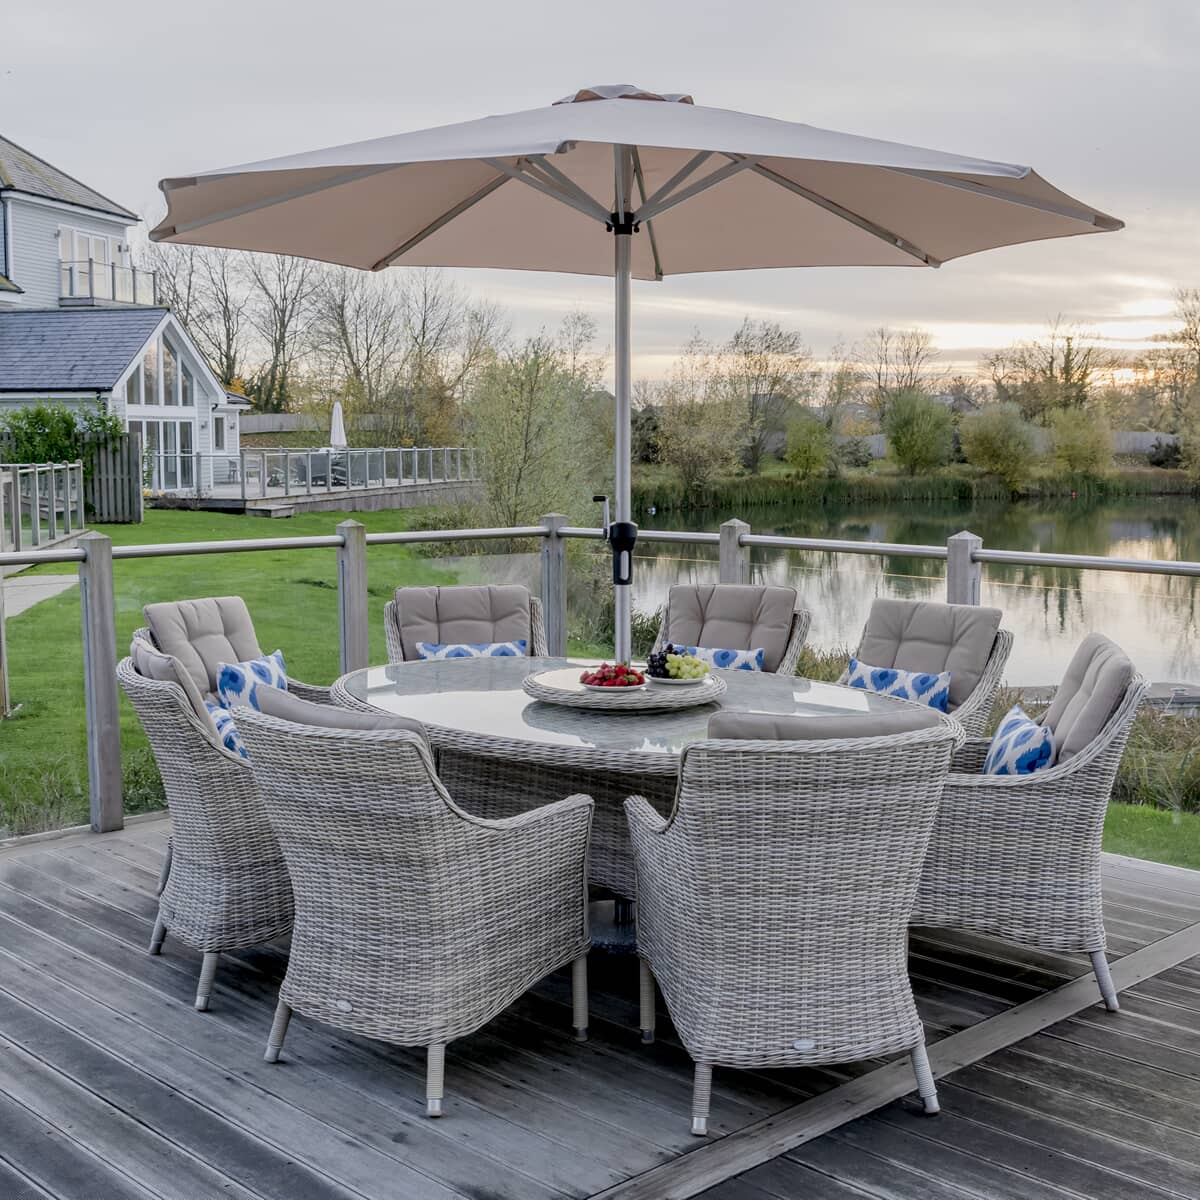 Bramblecrest ascot 220 x 145cm elliptical table with 8 armchairs with lazy and parasol